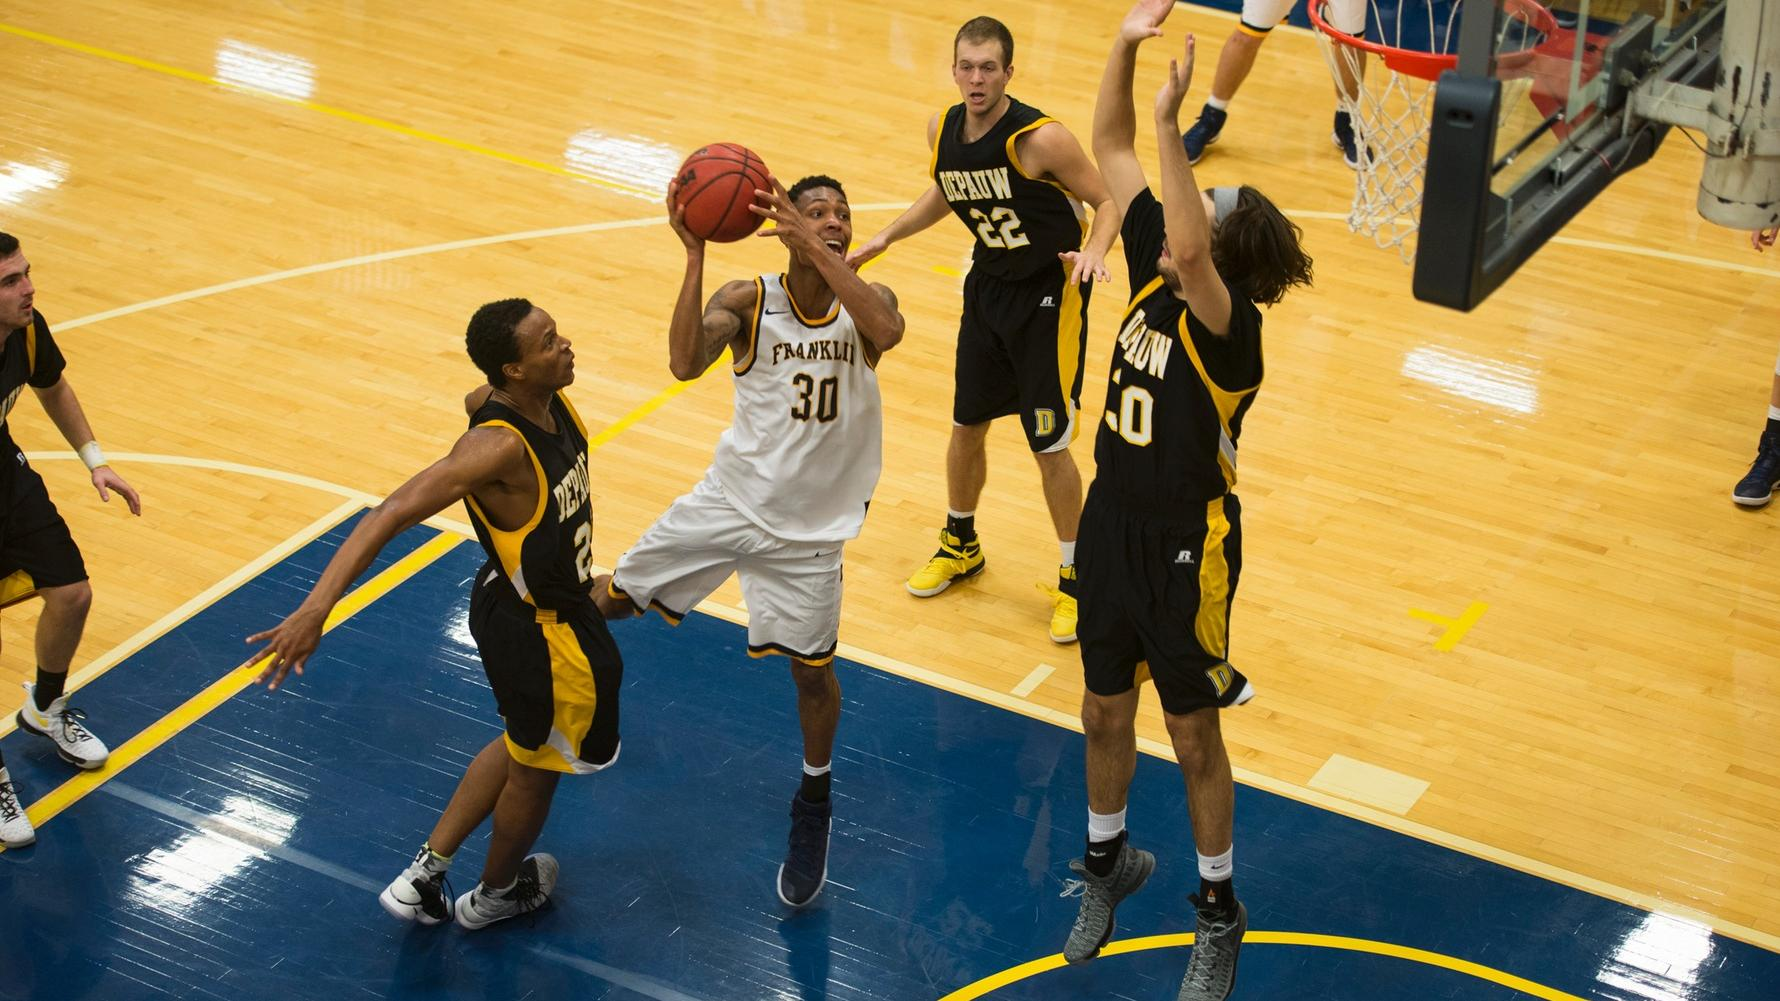 Men's Basketball Team To Host Hanover on Bankers Rivalry Night